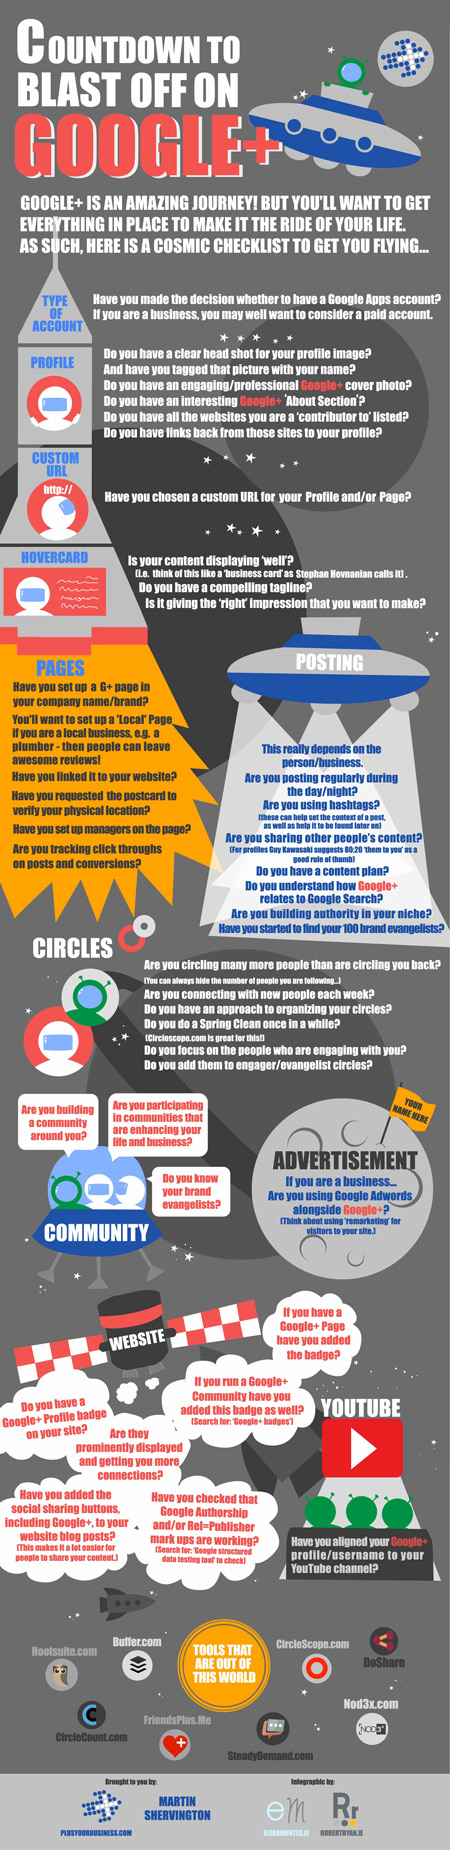 Infographic Design - Countdown To Blasting Off On Google +